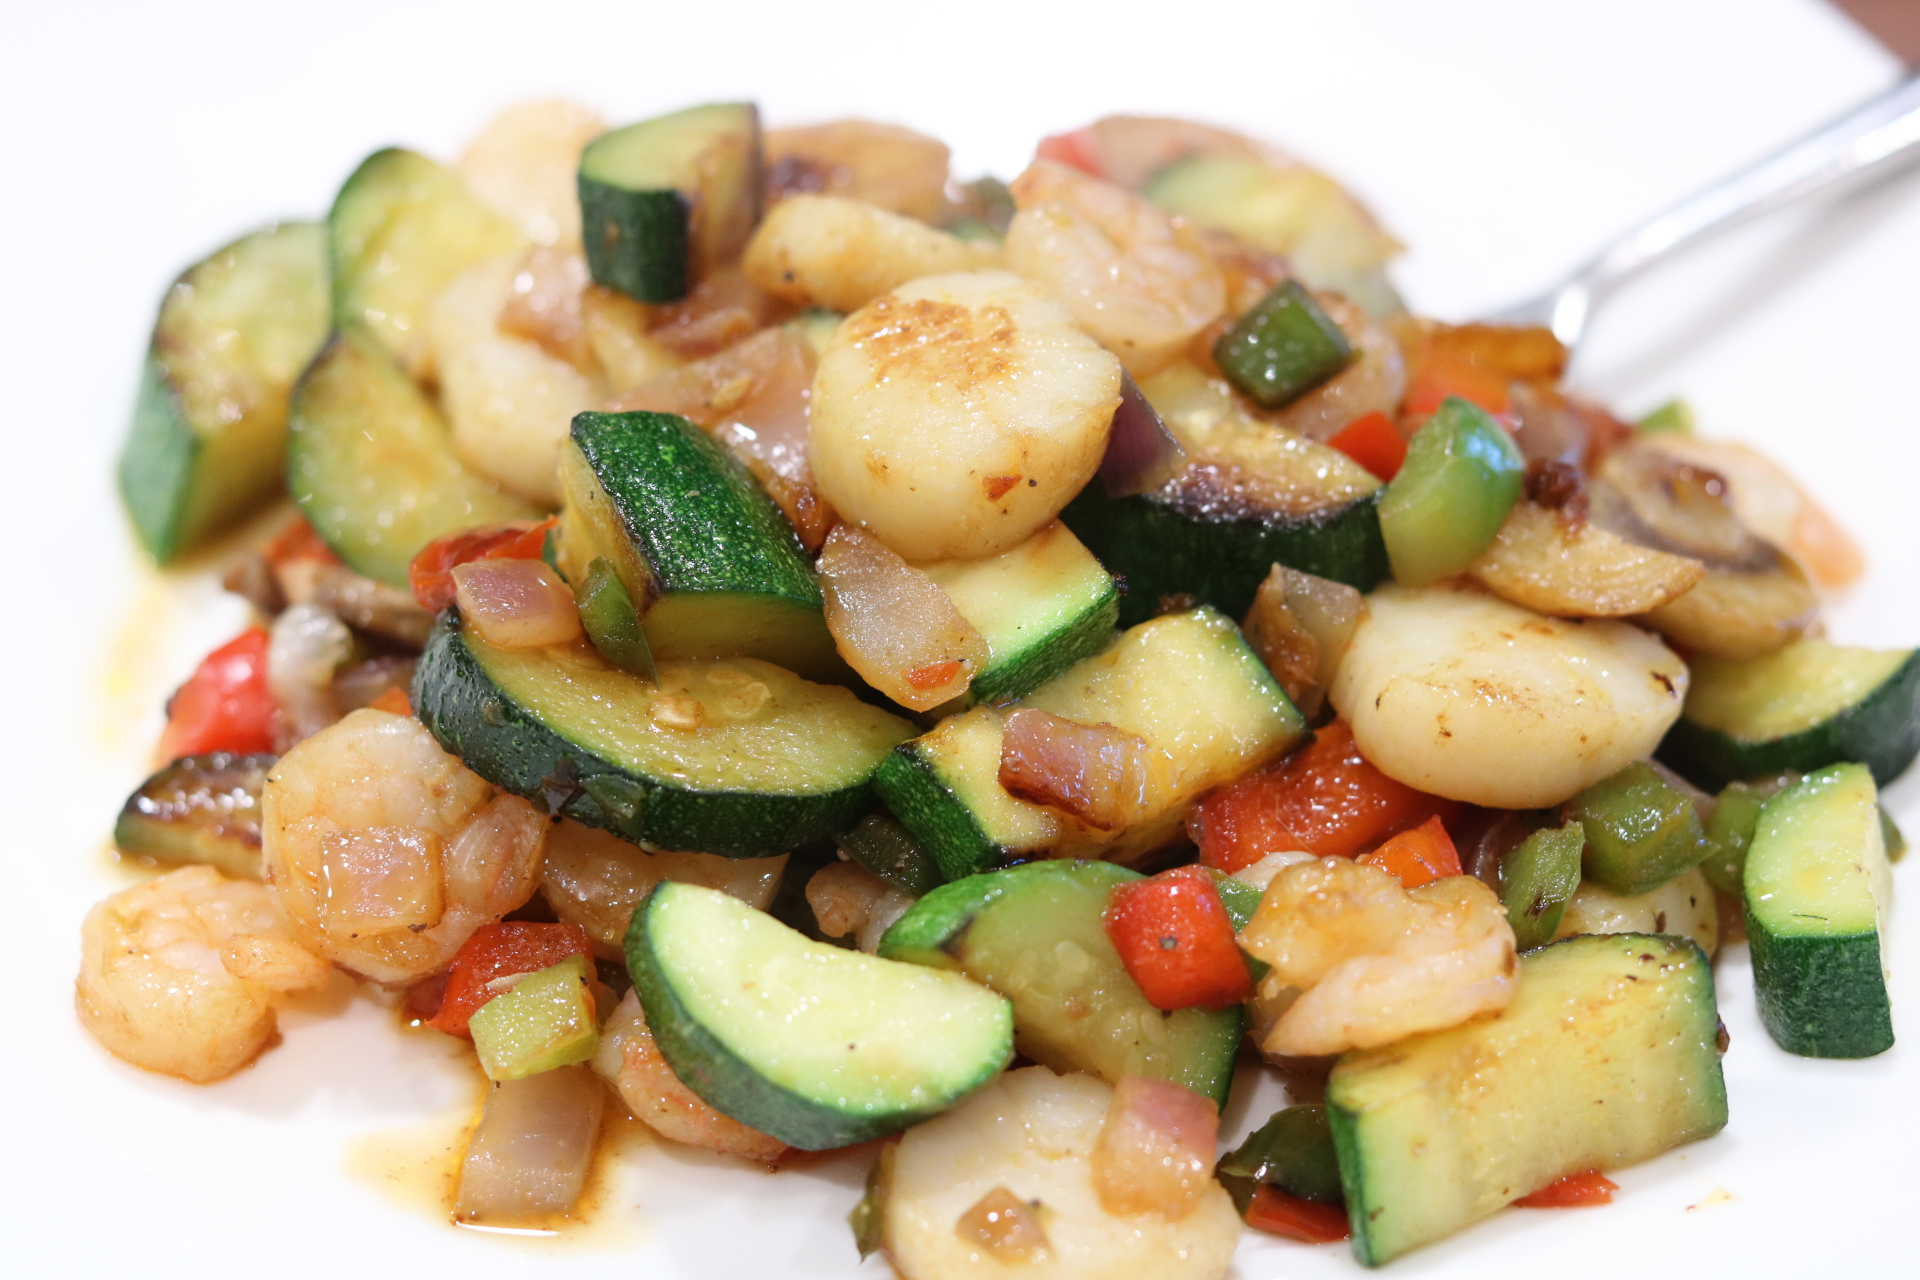 Marie's favourite healthy family recipe - Seafood & sautéed vegetables